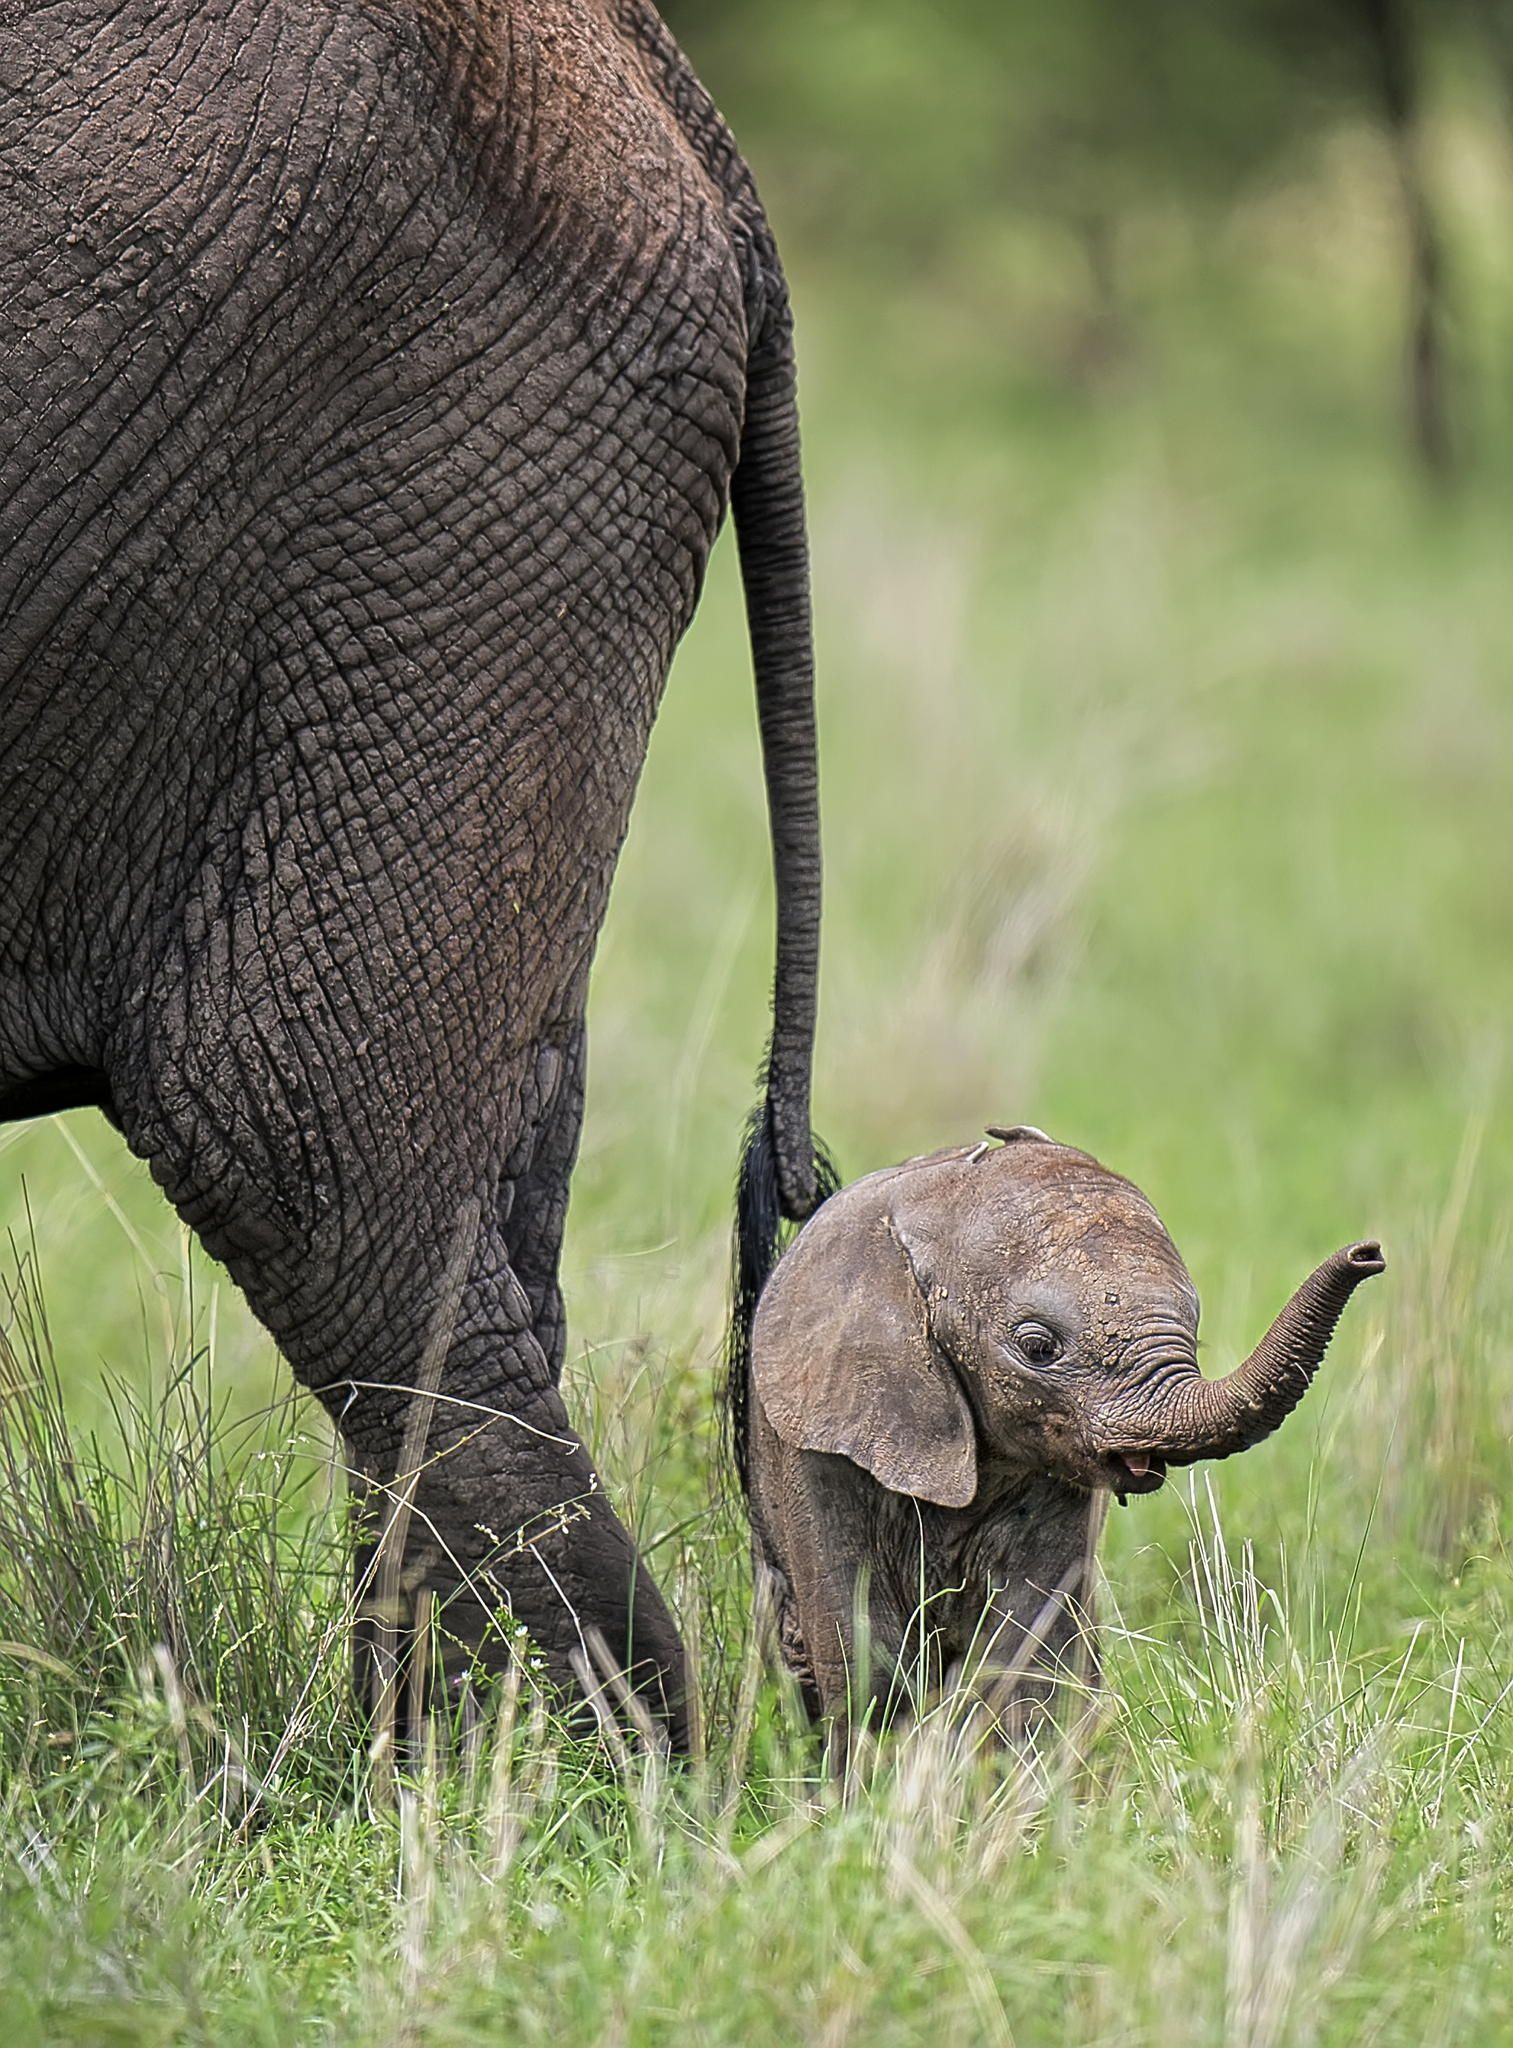 30 Cute Funny Baby Elephant Images That Will Brighten Up Your